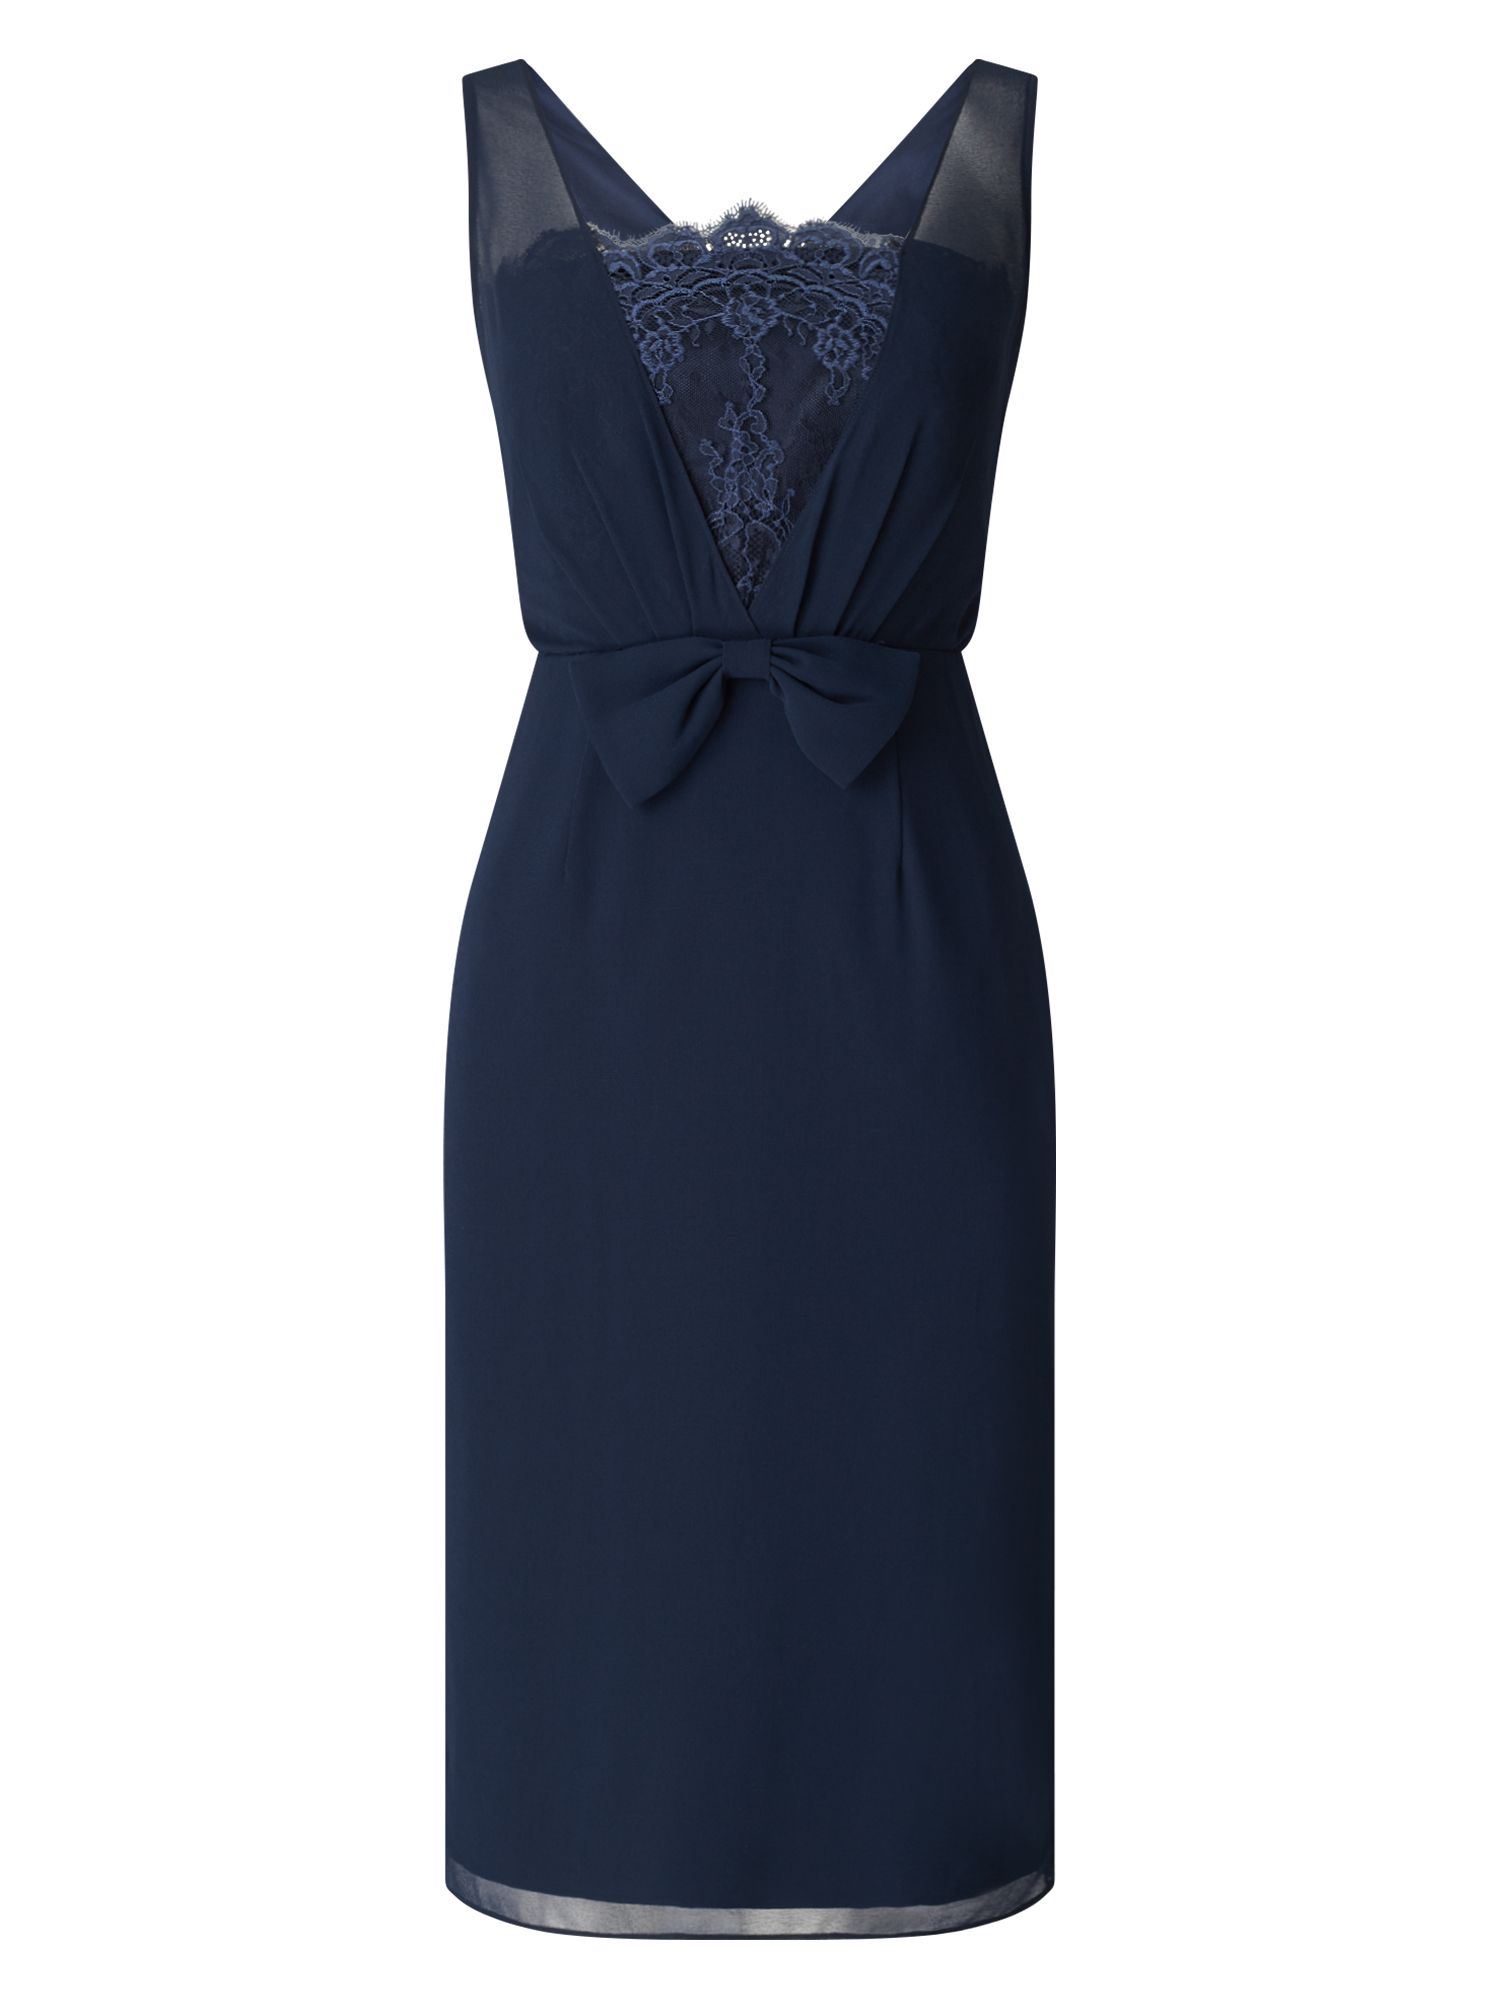 Jacques Vert Chiffon Lace Trim Dress, Blue